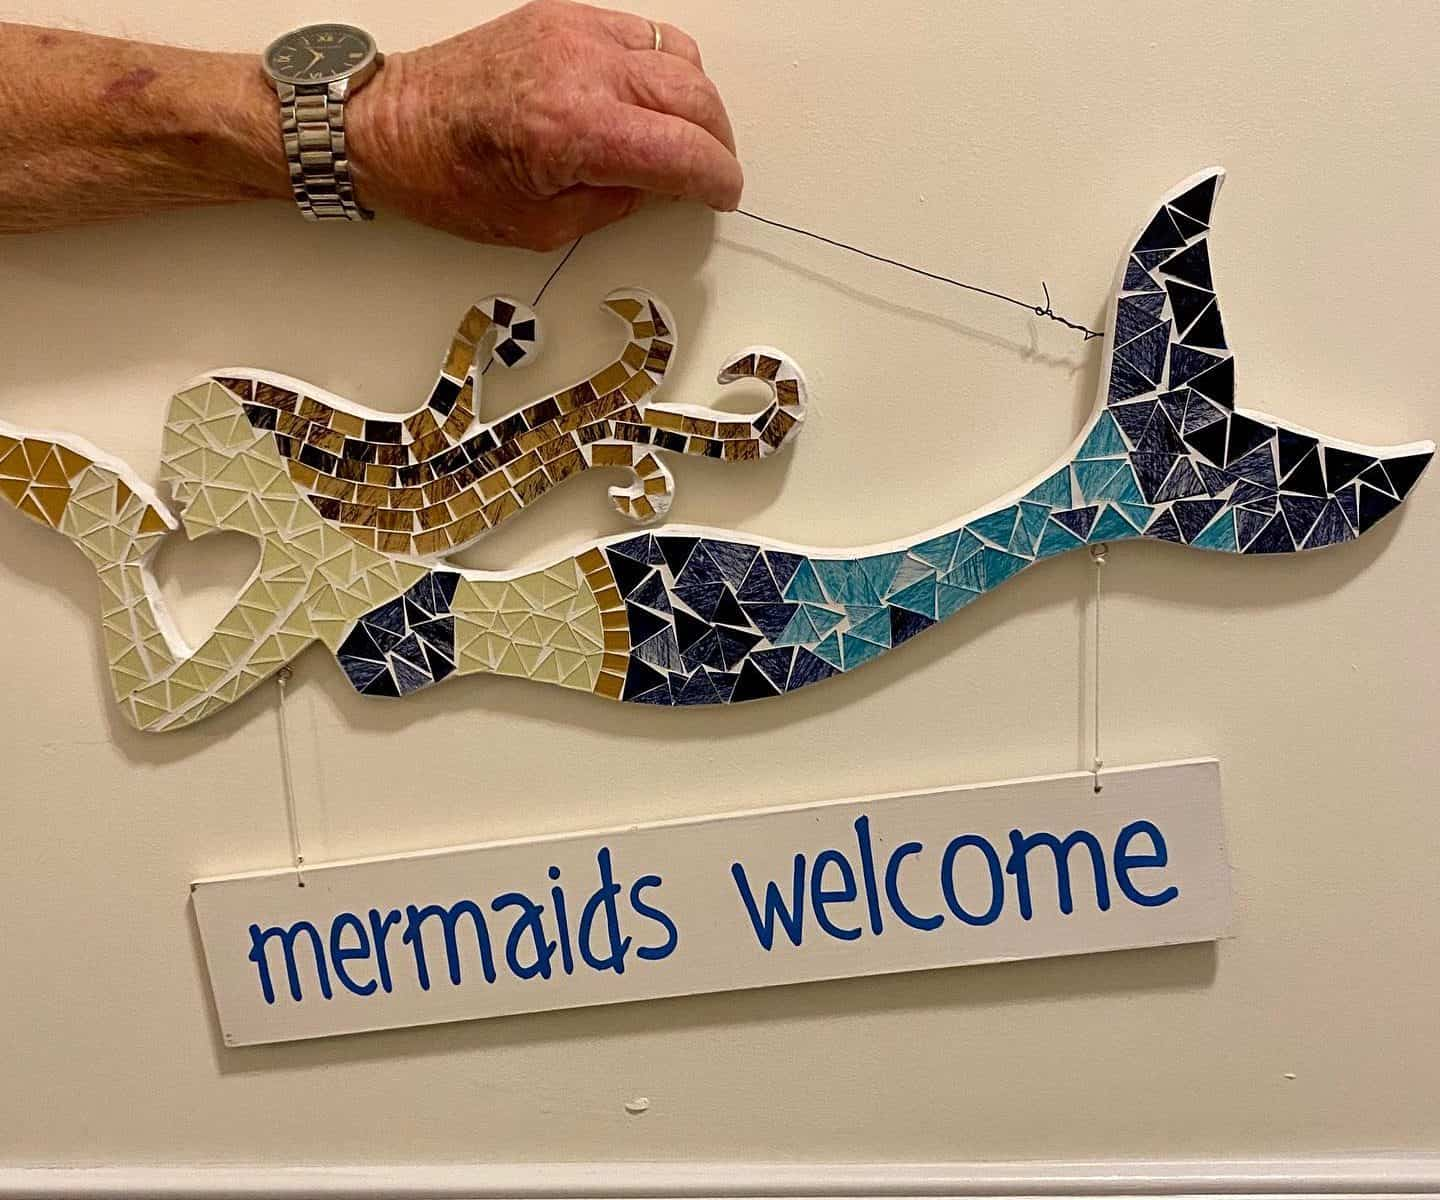 Mermaids welcome....... one of our lovely residents great crafts, love it and want to buy it please see business card attached #sunstoneapartments #j&...